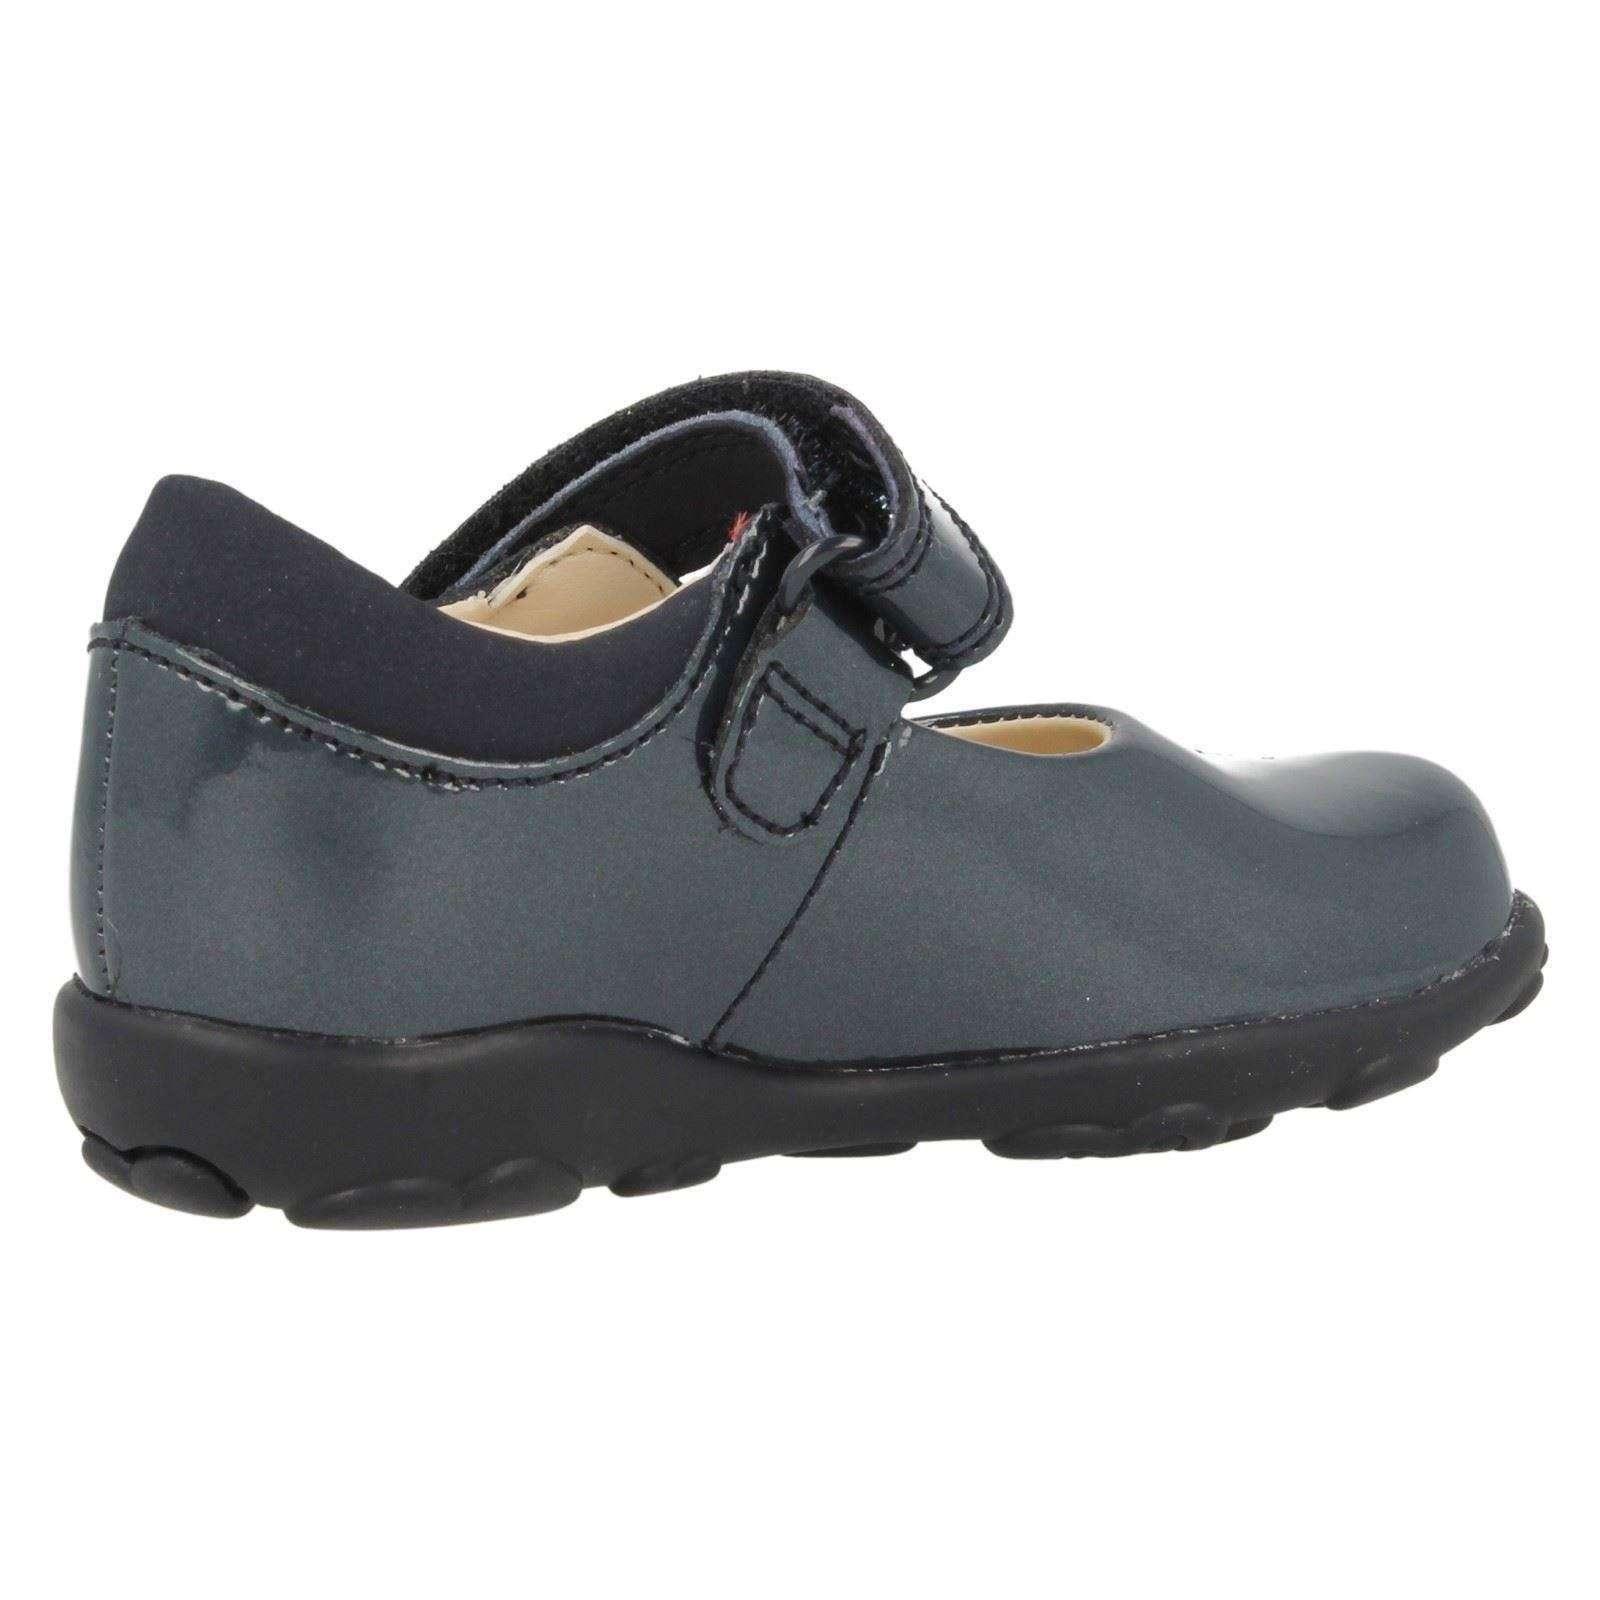 Baby First Walking Shoes Clarks